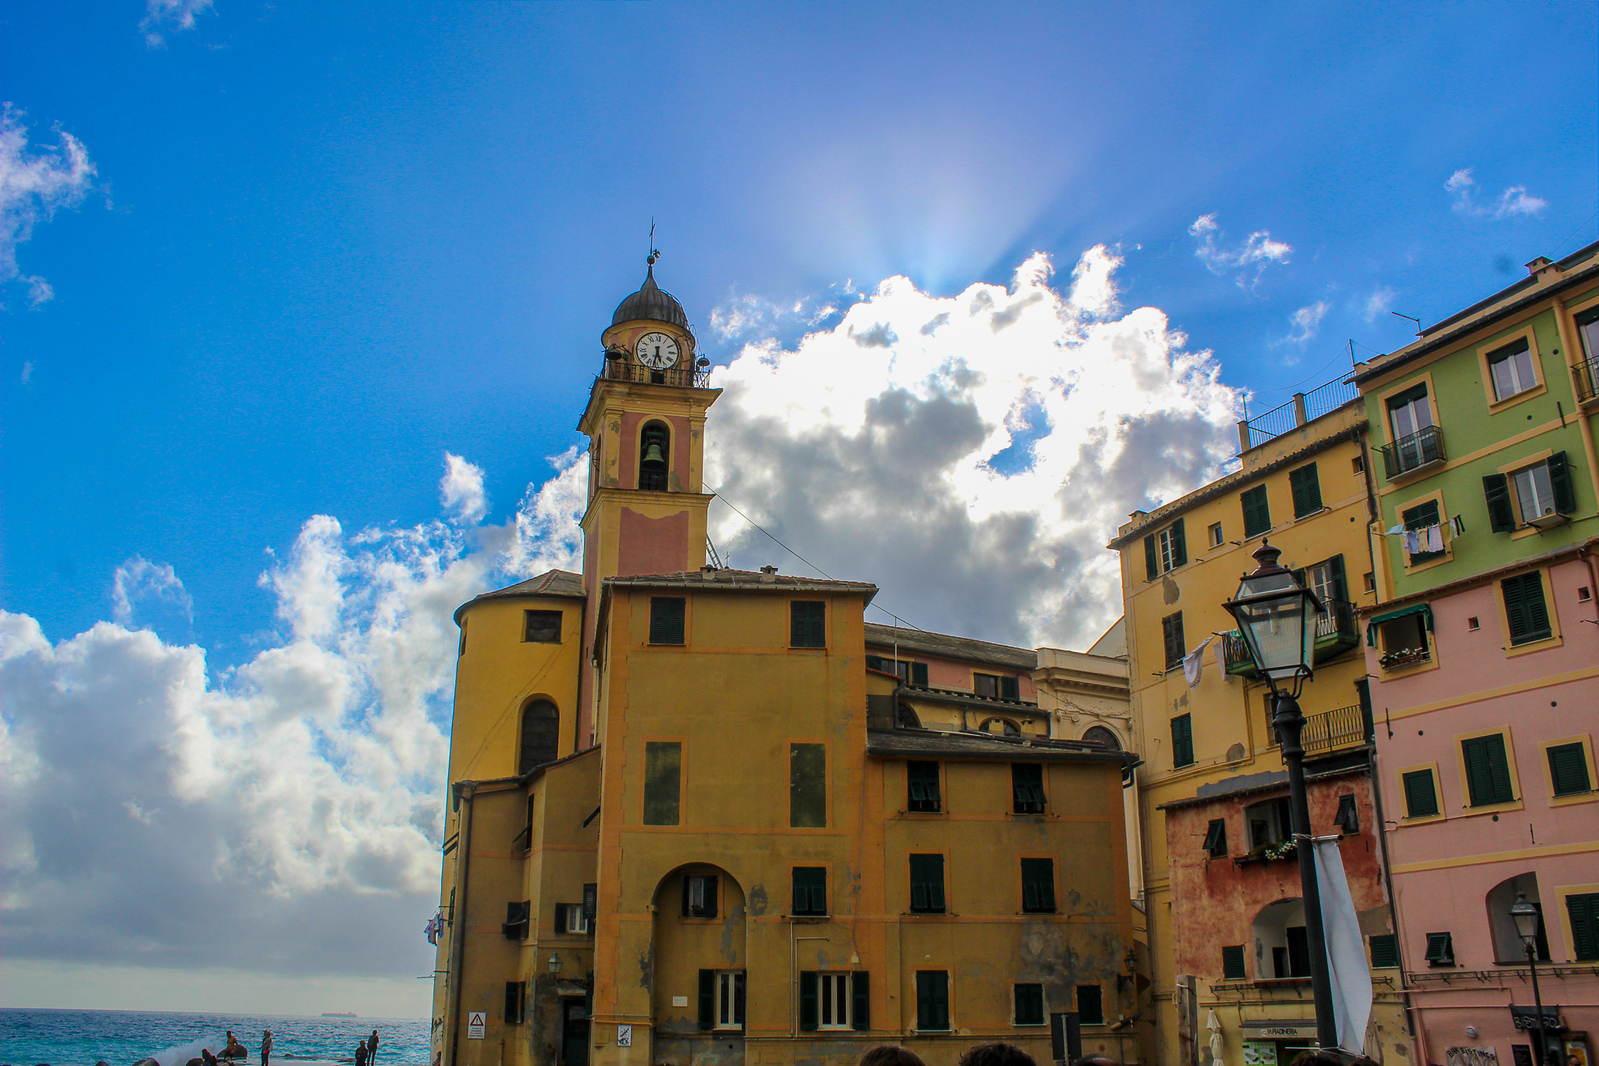 things to do in camogli include going to church